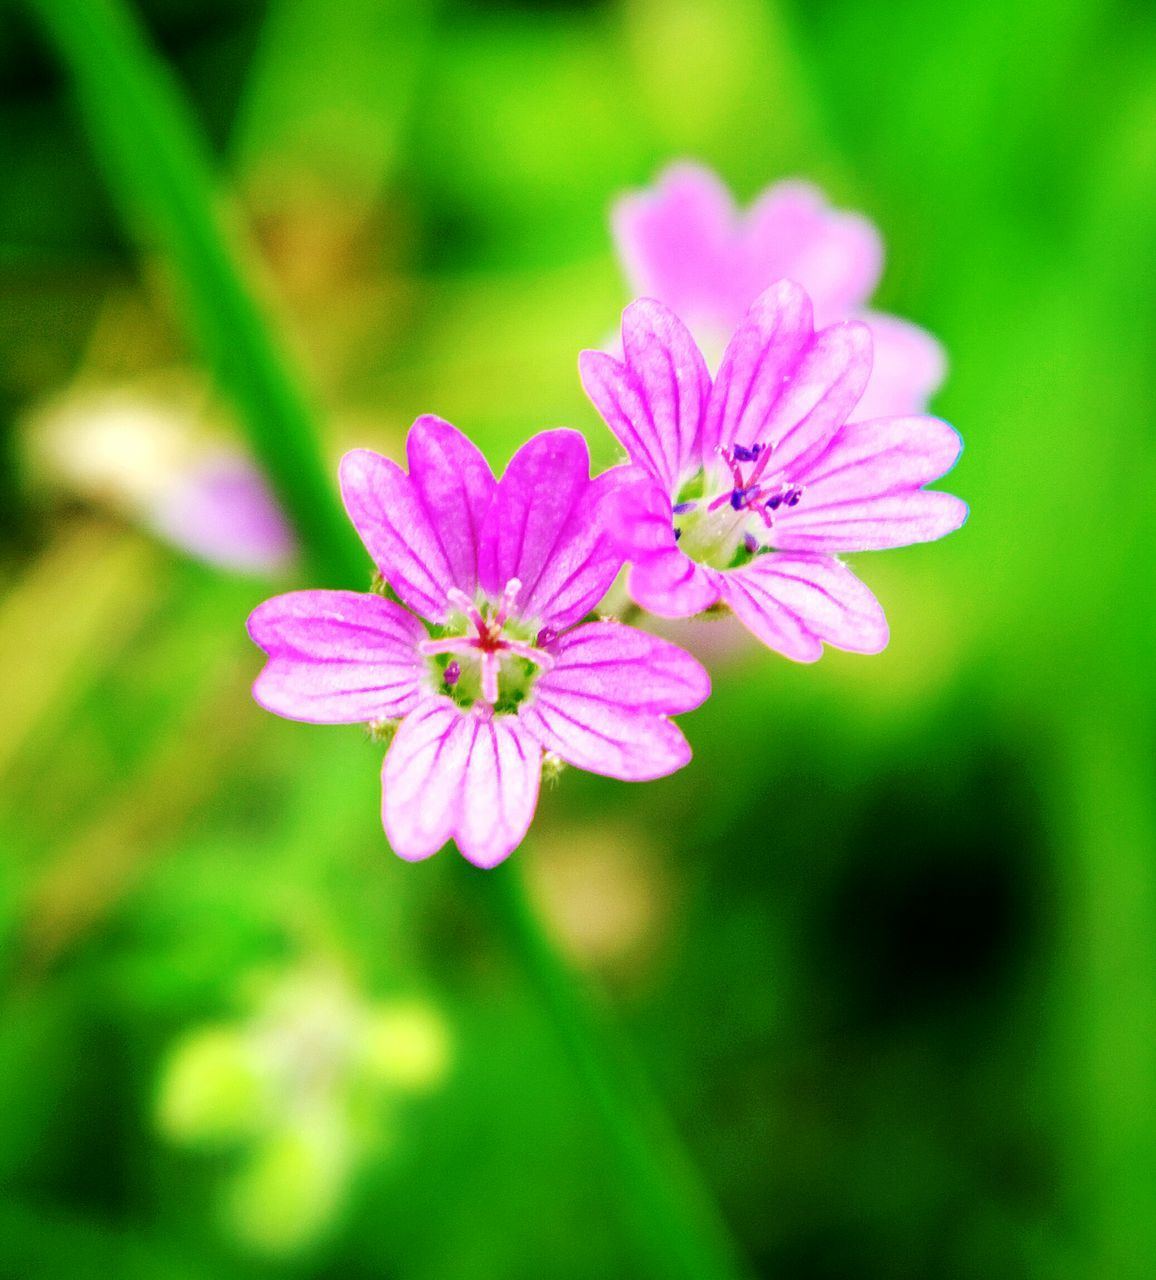 flower, nature, growth, plant, blooming, petal, no people, beauty in nature, fragility, flower head, freshness, outdoors, close-up, day